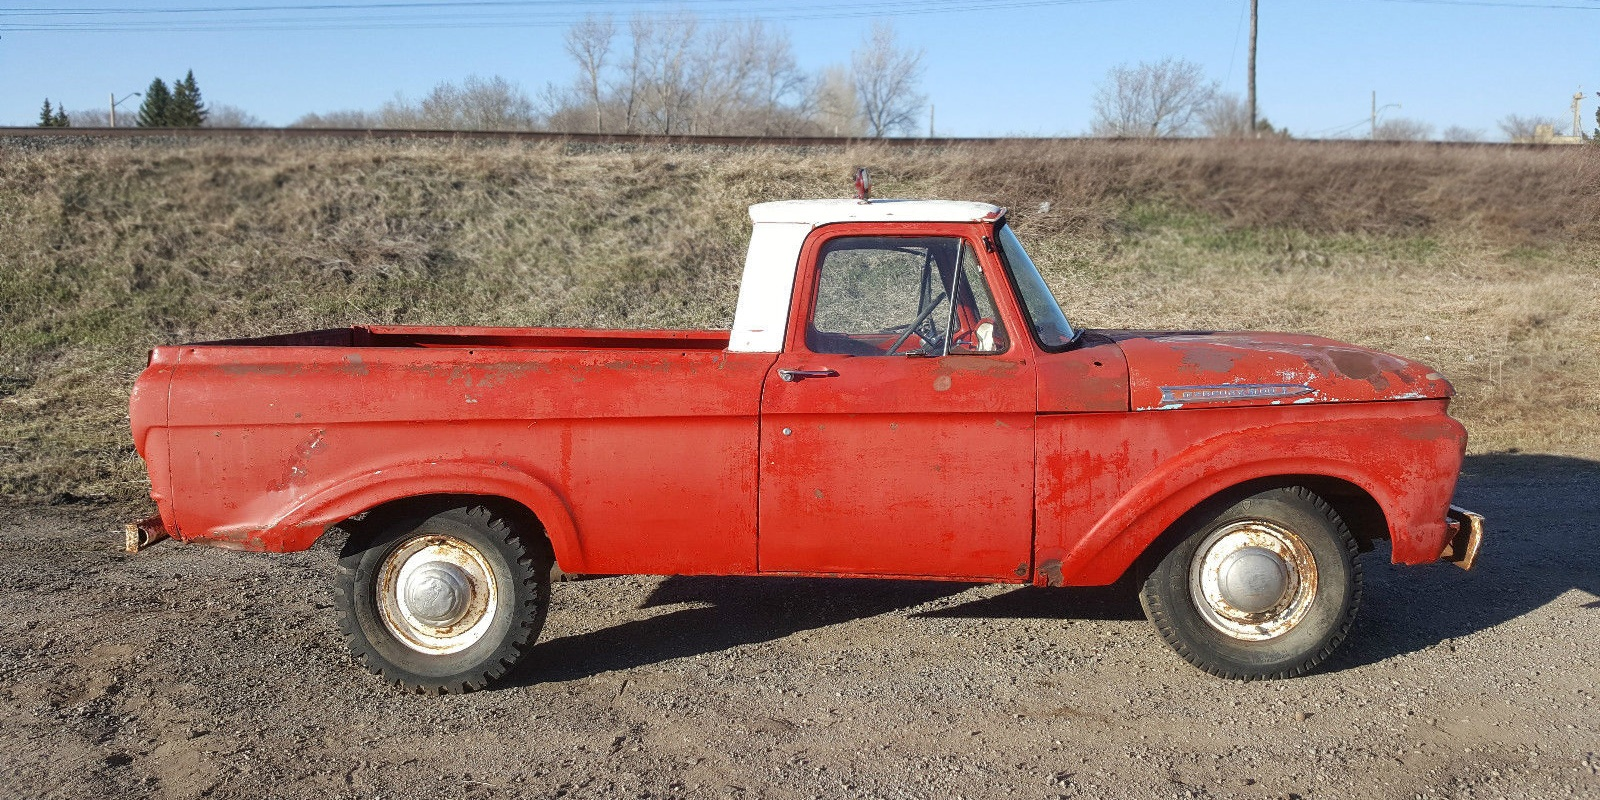 O Can A Da 1961 Mercury M 100 Unibody Dodge Pickup Truck North Dakota Where This Is Located Listed On Ebay With Current Bid Price Of 1225 And There No Reserve